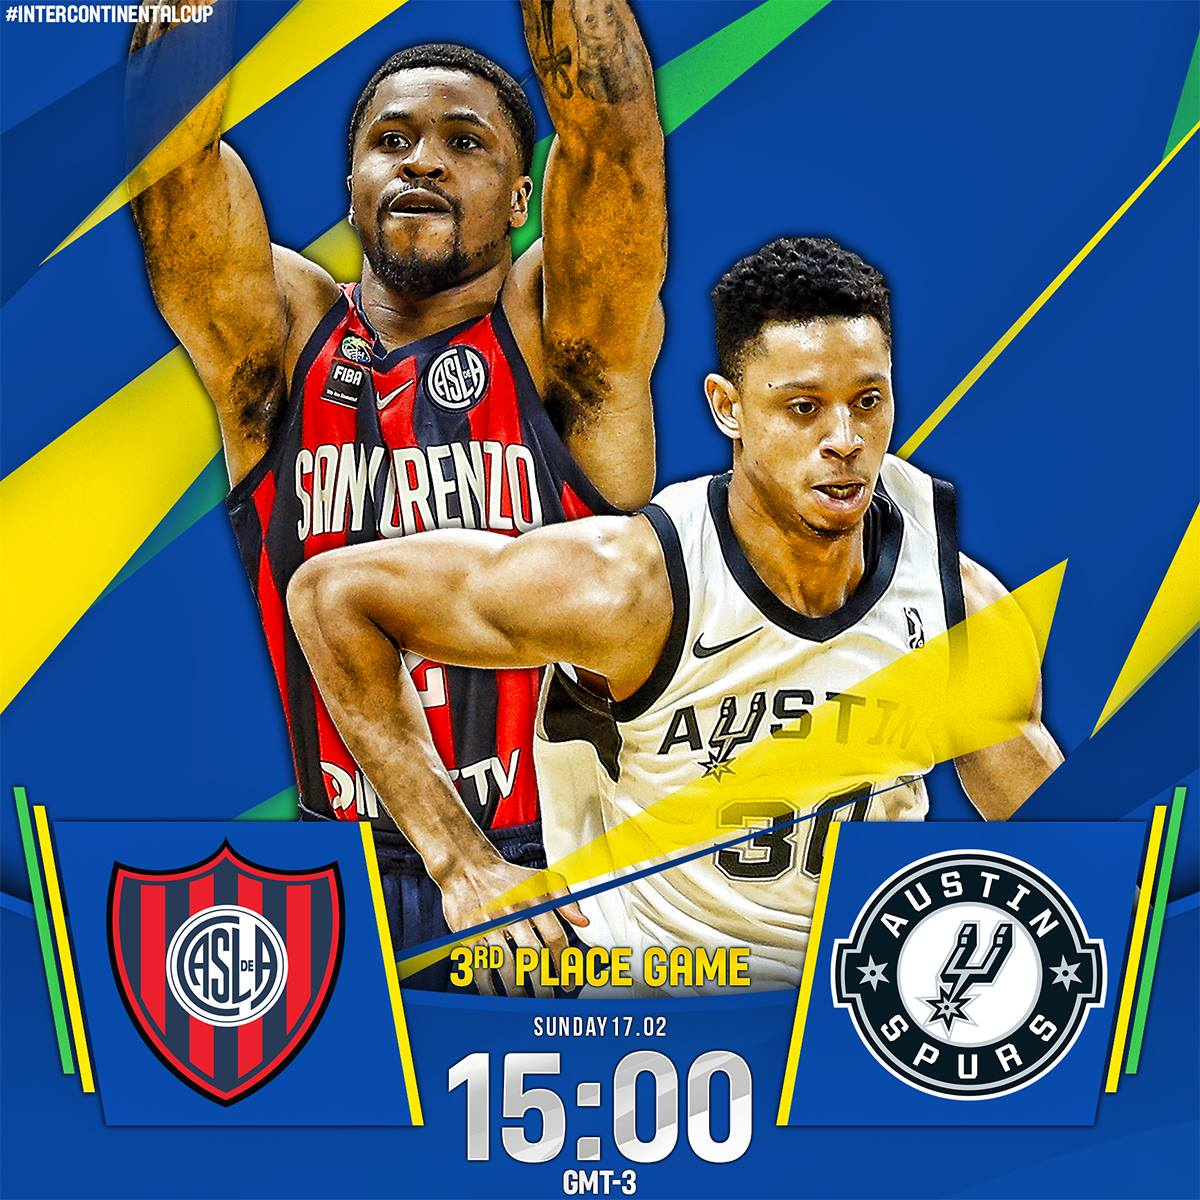 LIVE: Reigning #NBAGLeague champion @Austin_Spurs face San Lorenzo de Almagro (Argentina) in 3rd Place Game of @FIBAIC! #IntercontinentalCup   Watch here: http://on.nba.com/2GSB0aS